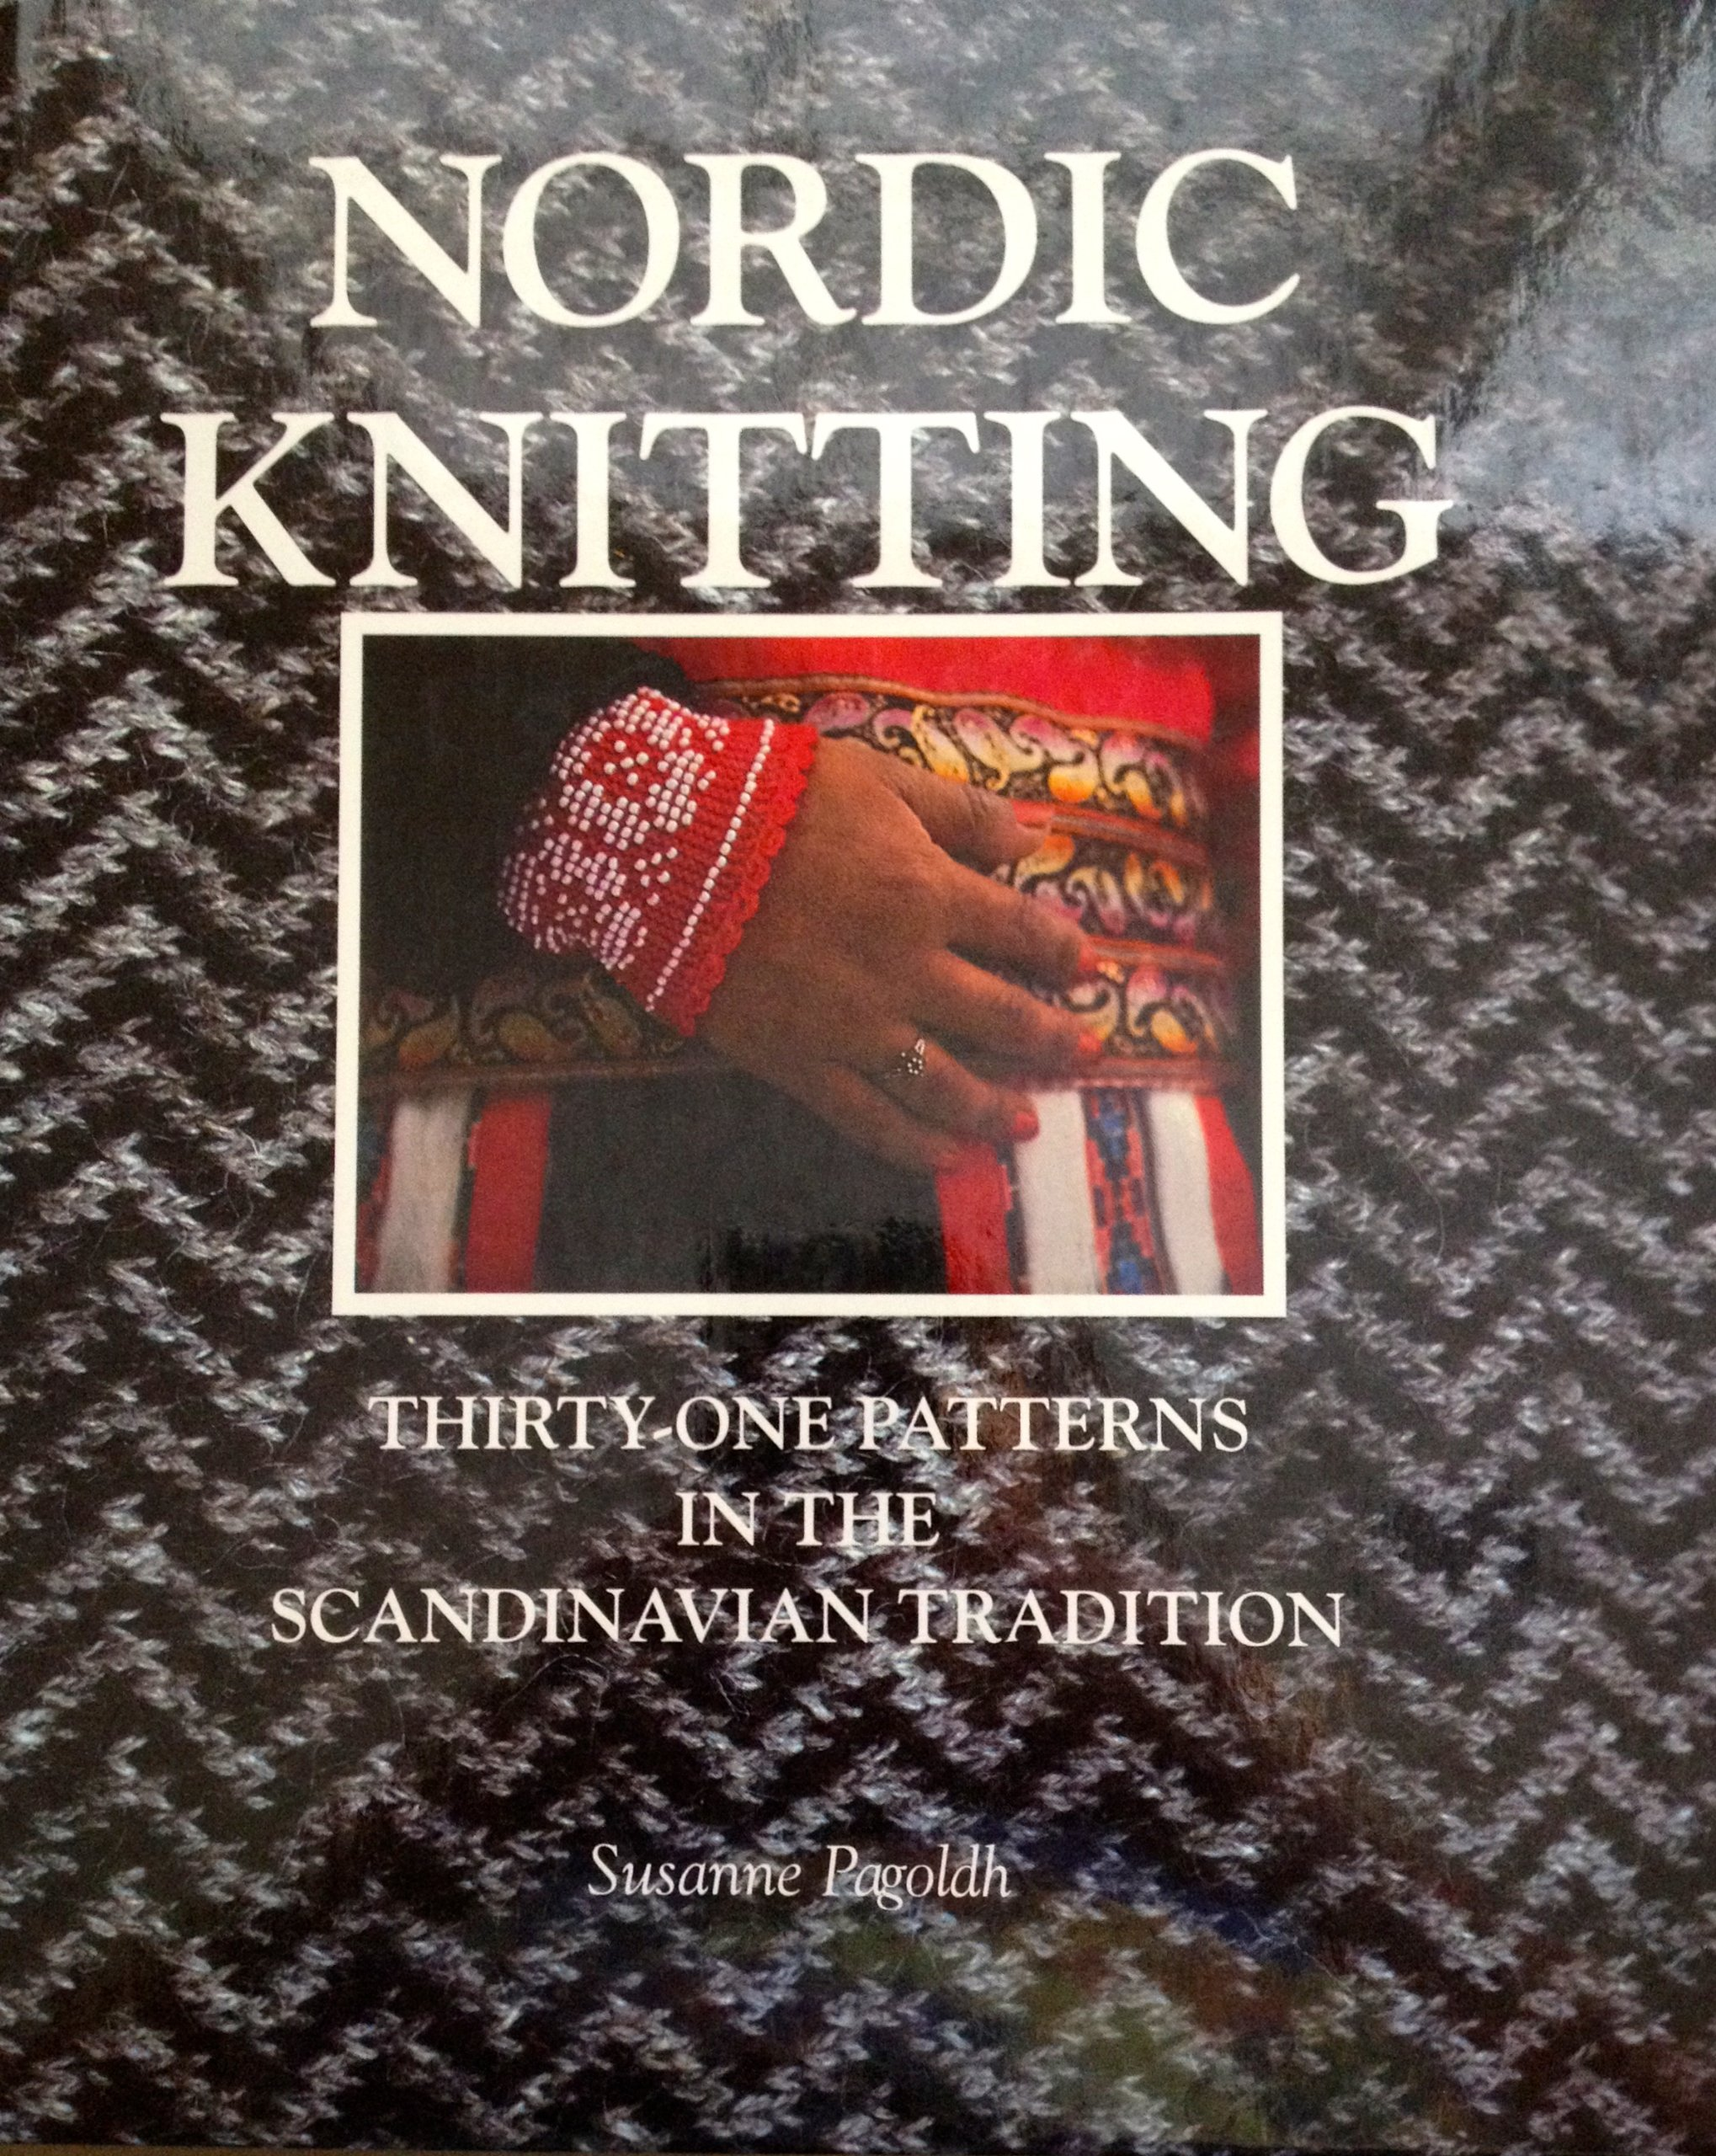 Nordic Knitting: Susanne Pagoldh: 9780713635256: Amazon.com: Books